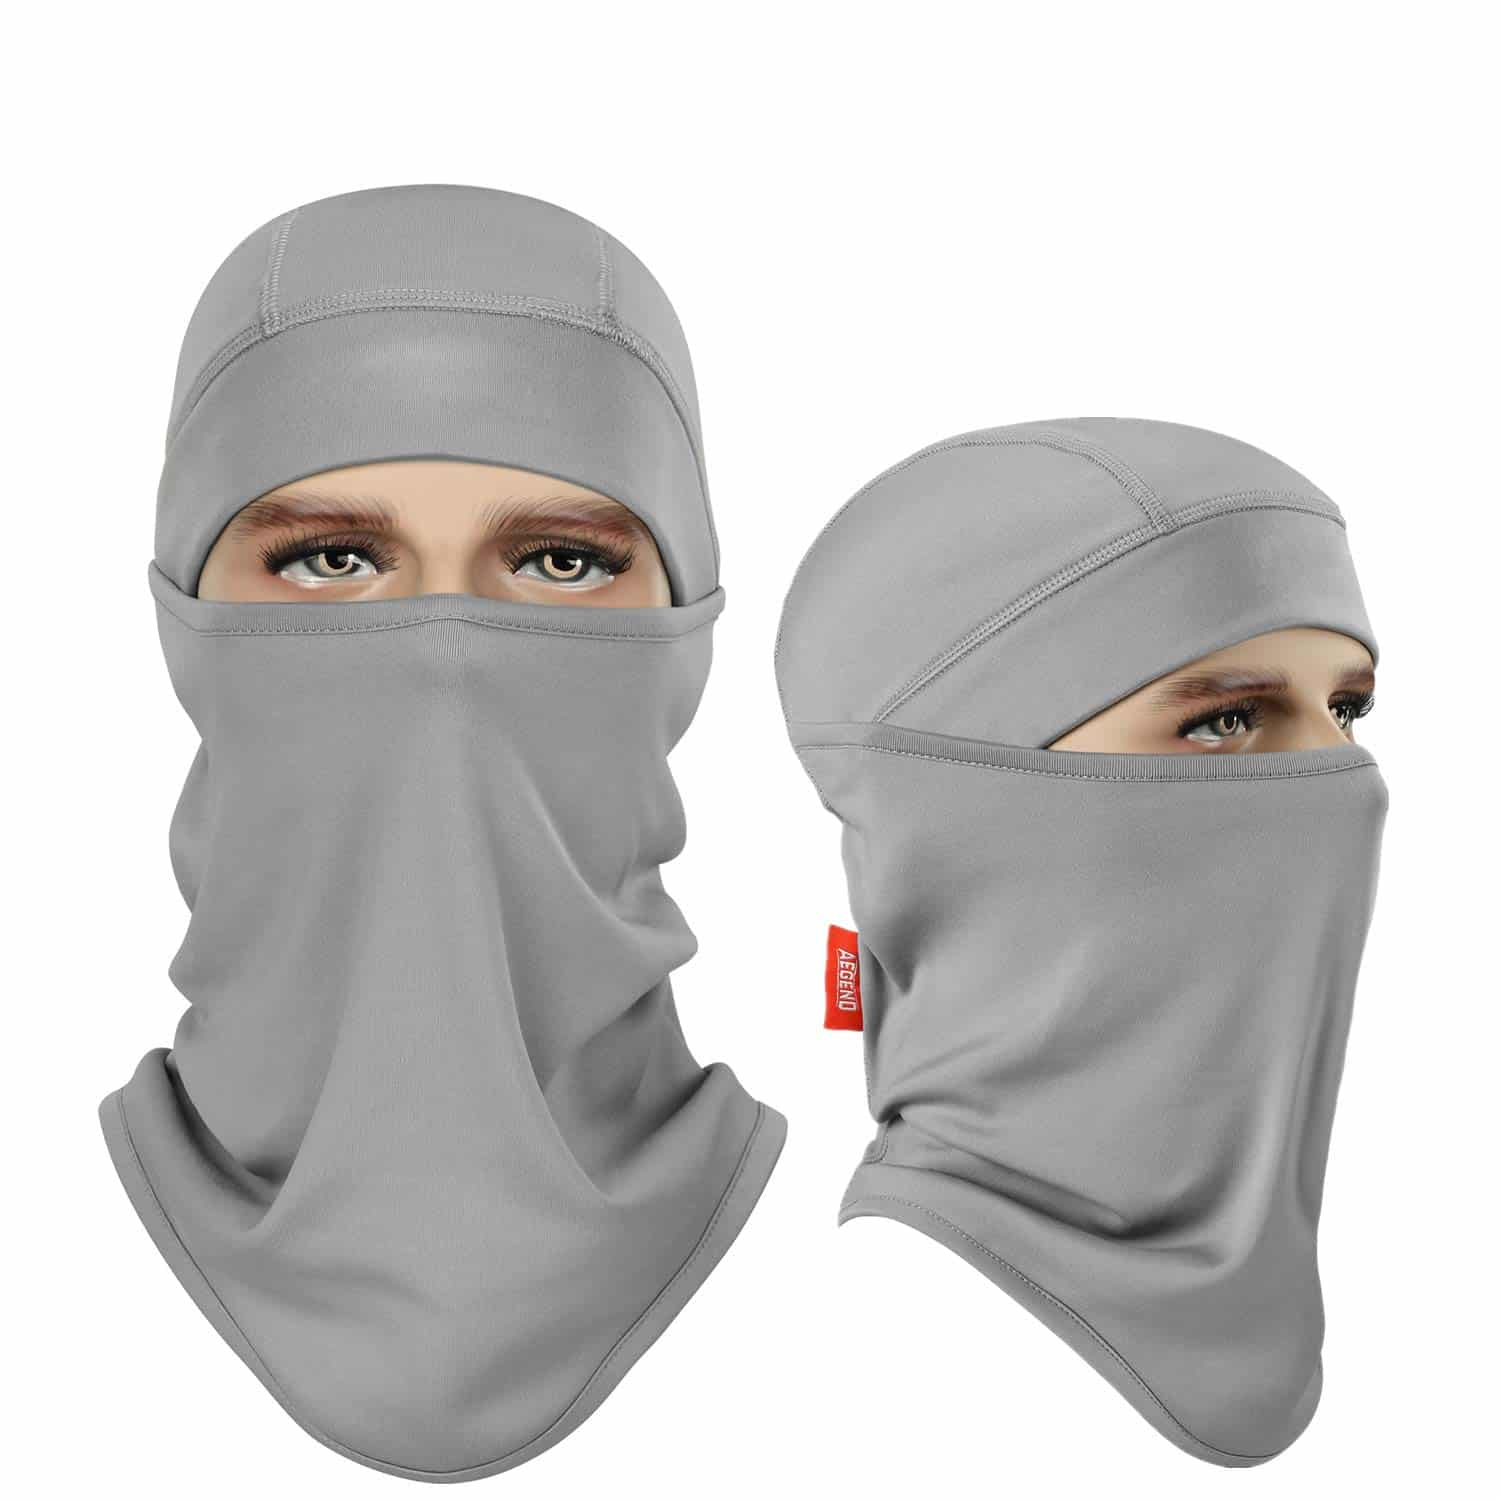 Aegend Balaclava Ski Face Mask